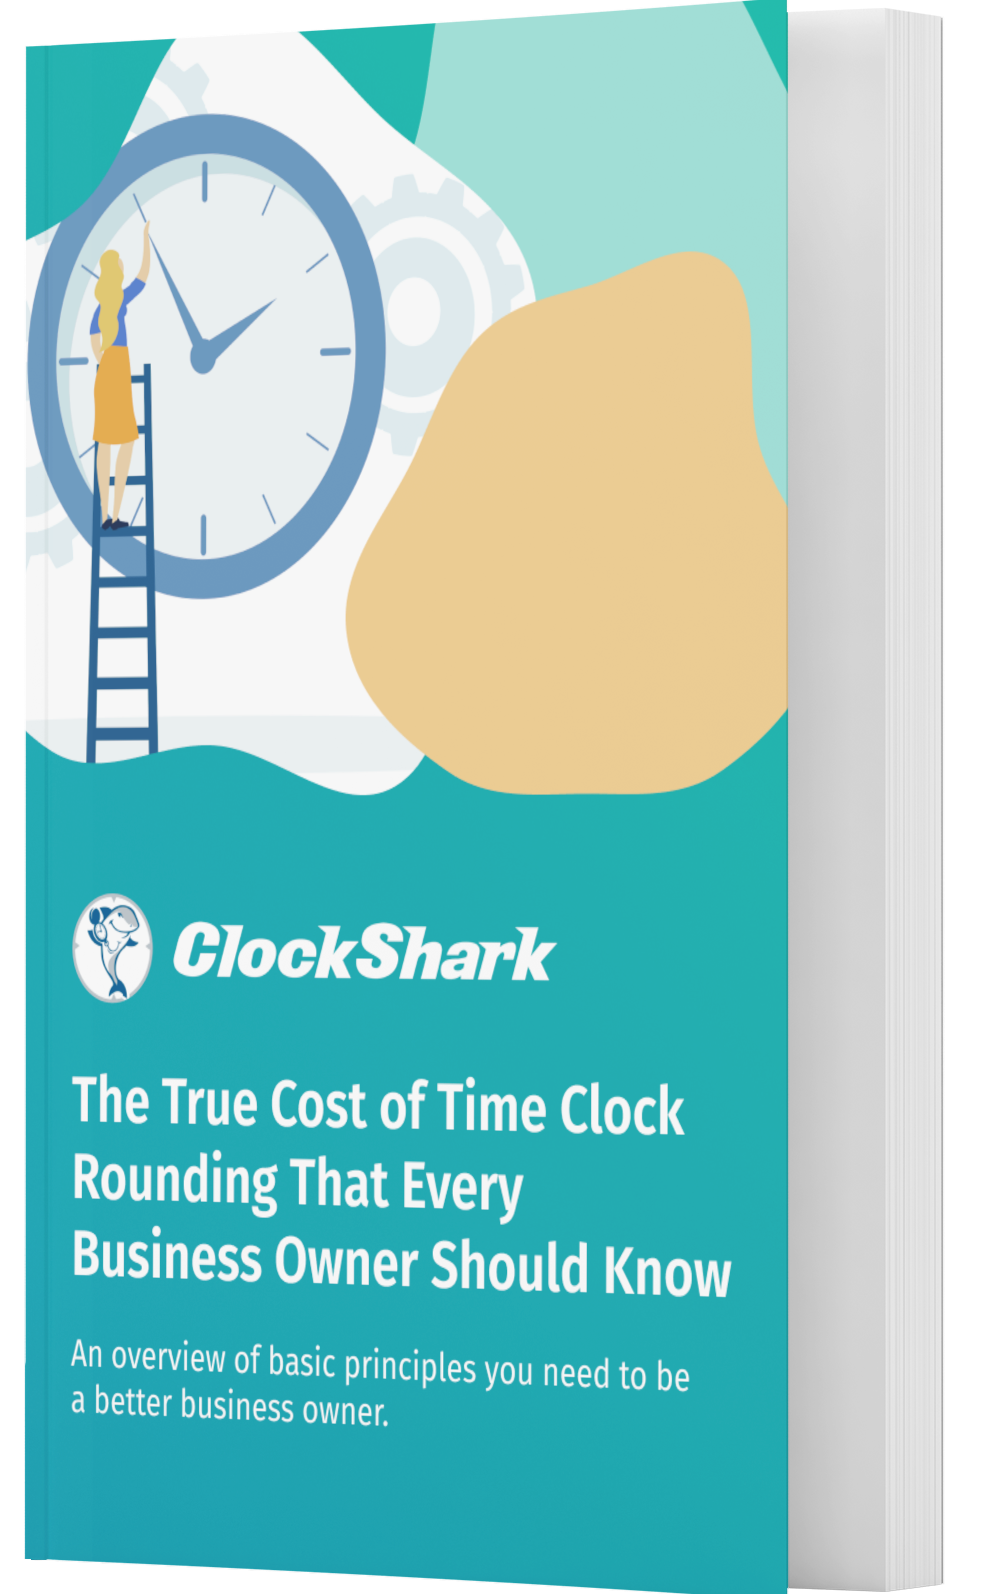 The True Cost of Time Clock Rounding That Every Business Owner Should Know